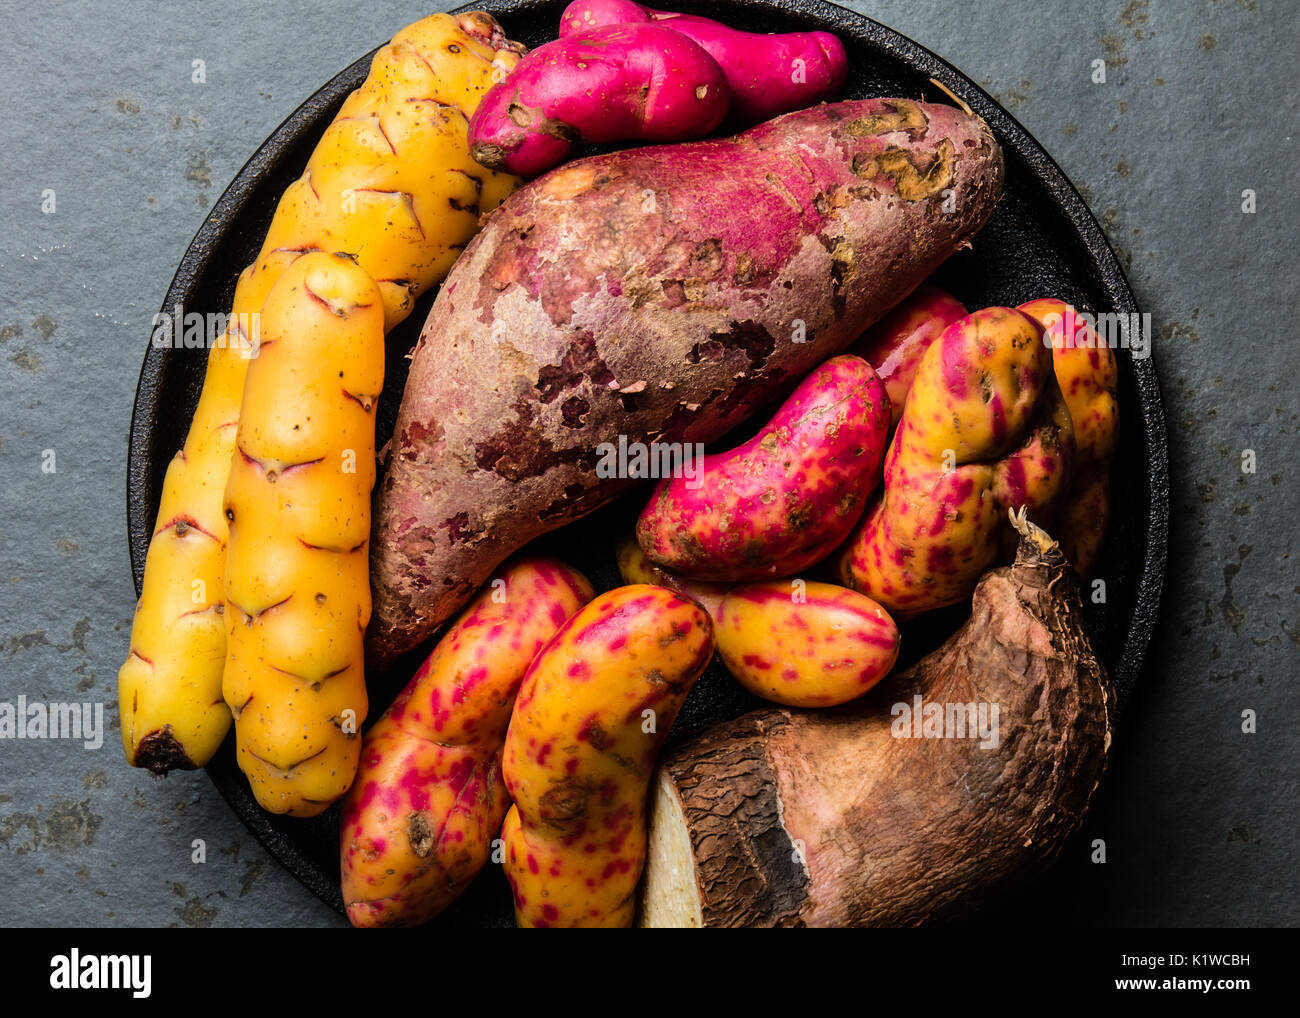 Peruvian raw ingredients for cooking - yuca, colored sweet potatoes and camote batata. Top view. - Stock Image